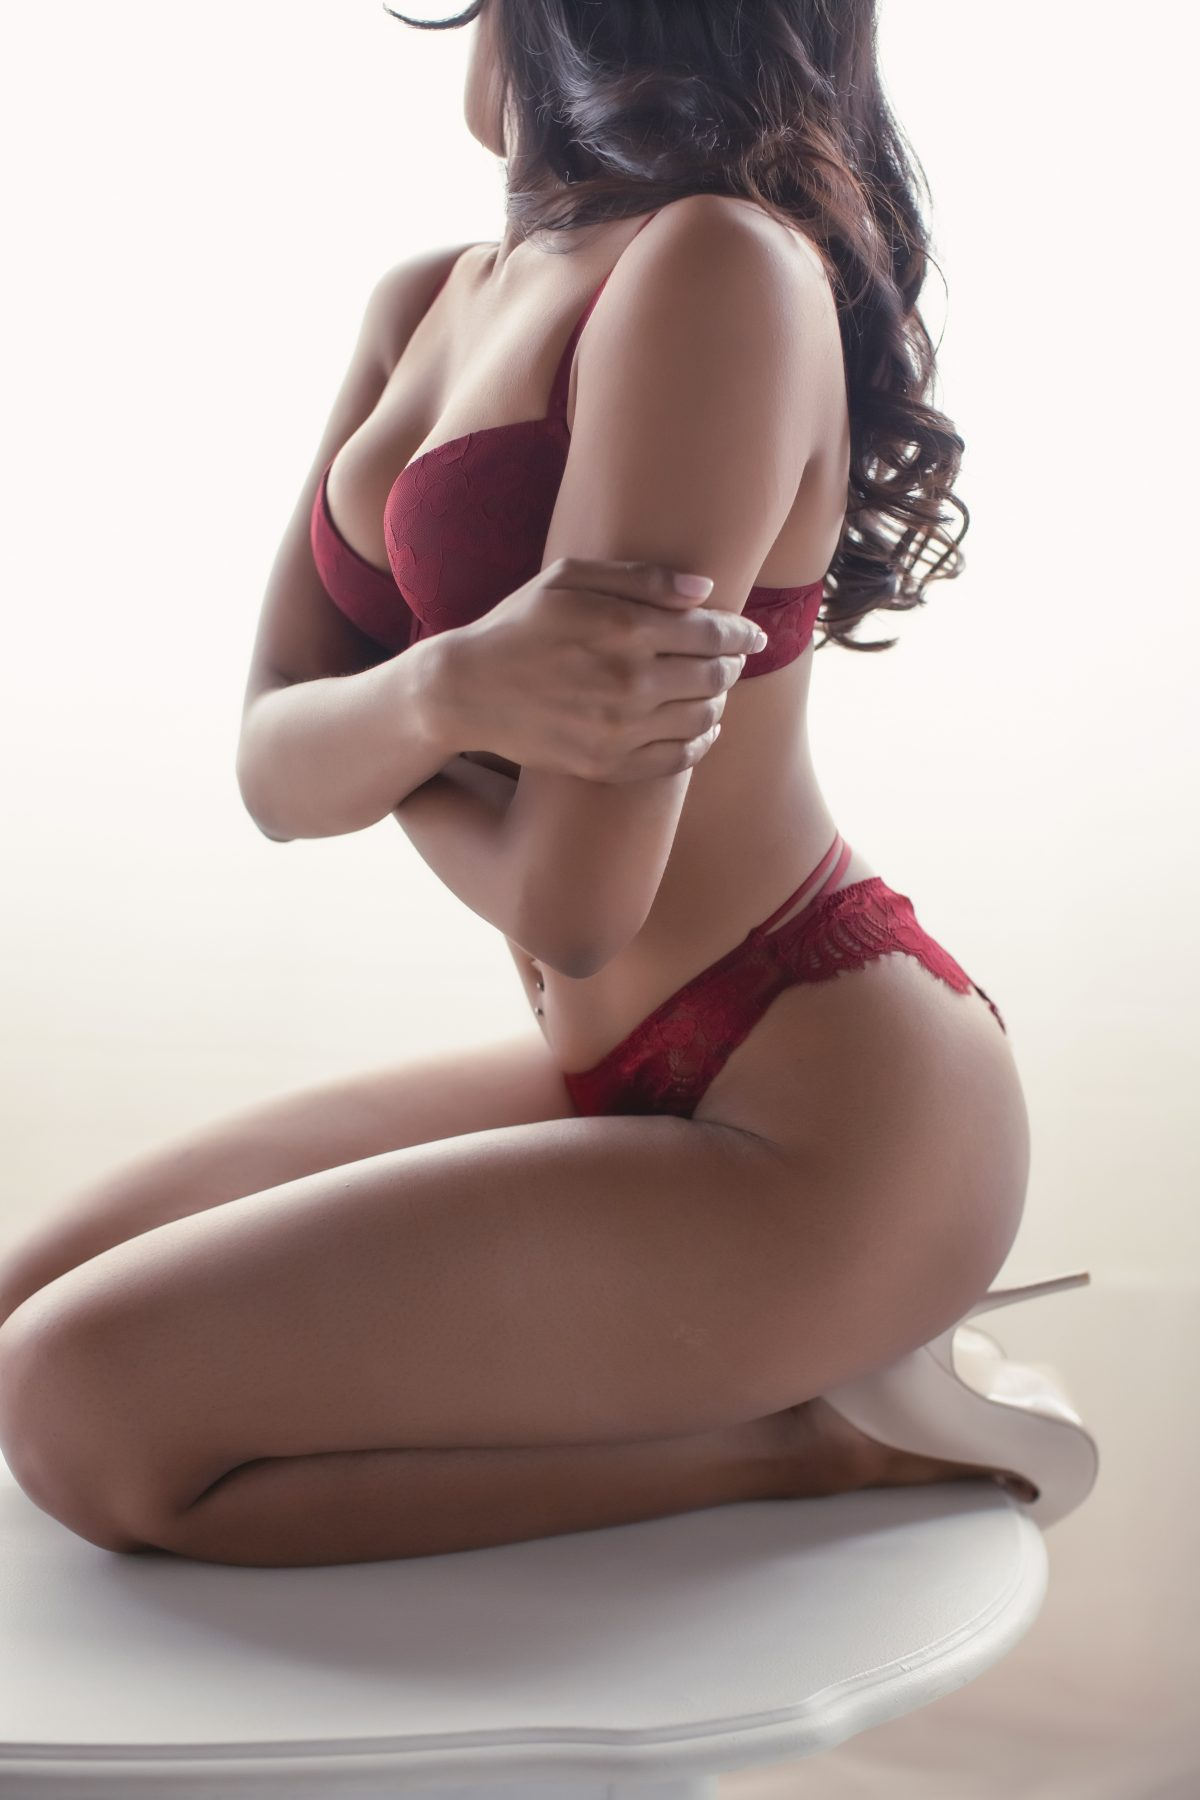 Toronto escorts companion upscale Marcella Interests Duo Couple-friendly Non-smoking Age Young Figure Slender Petite Breasts Natural Hair Raven-Haired Brunette Ethnicity South Asian European Tattoos Small Arrival